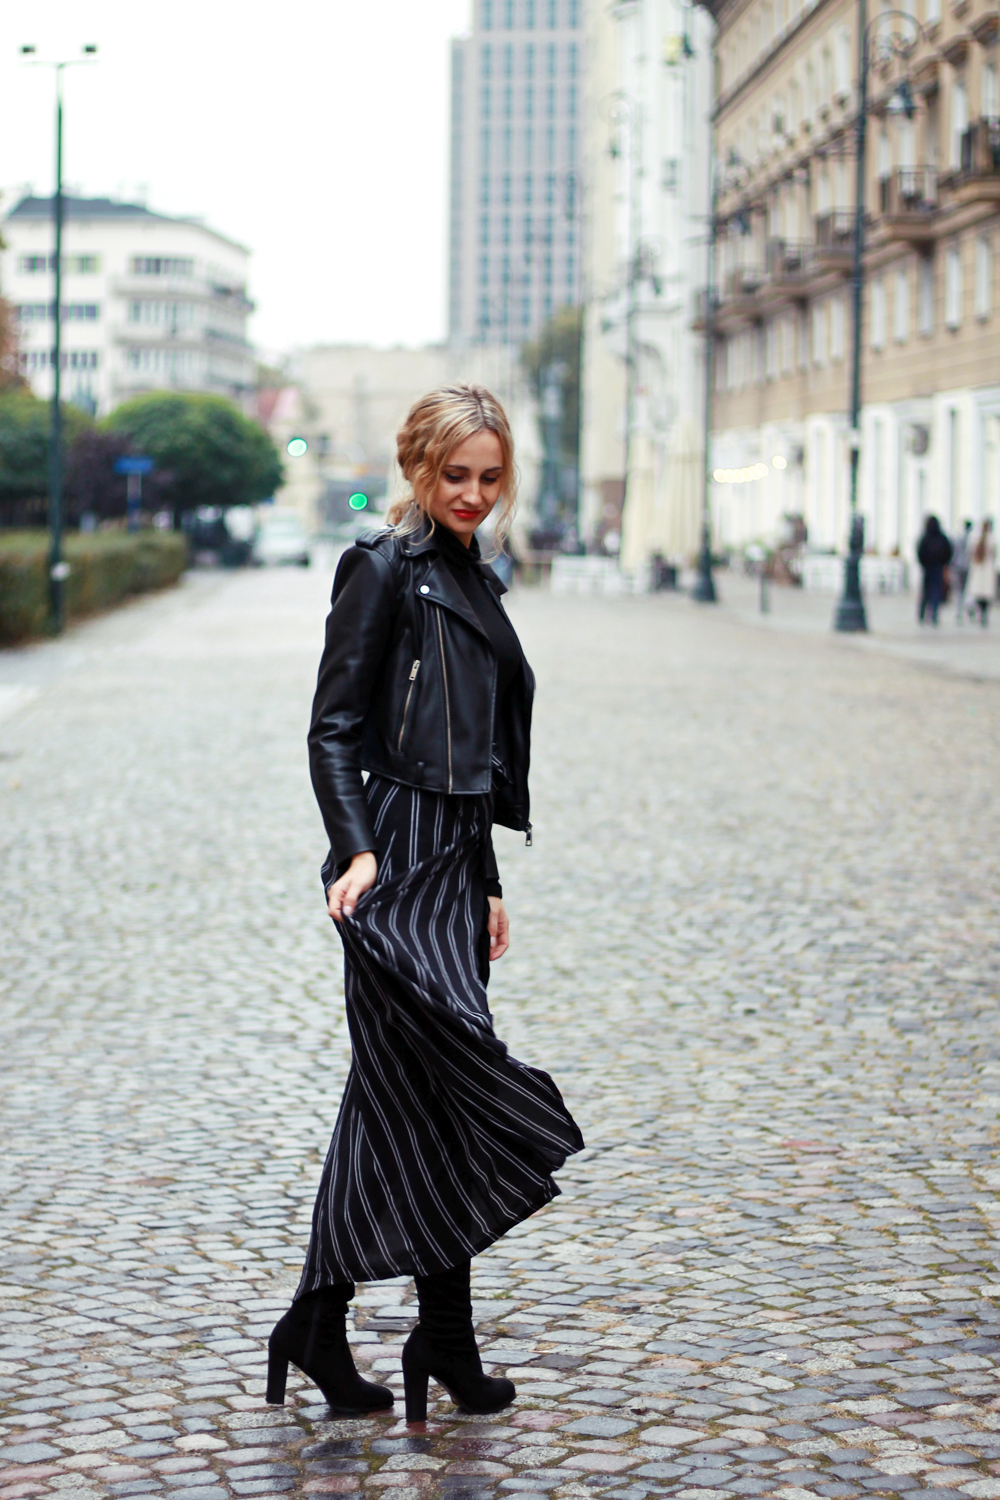 black-outfit-clothes-street-style-tumblr-girl-look-lookbook-fashion-ootd-what-to-wear-autumn-midi-skirt